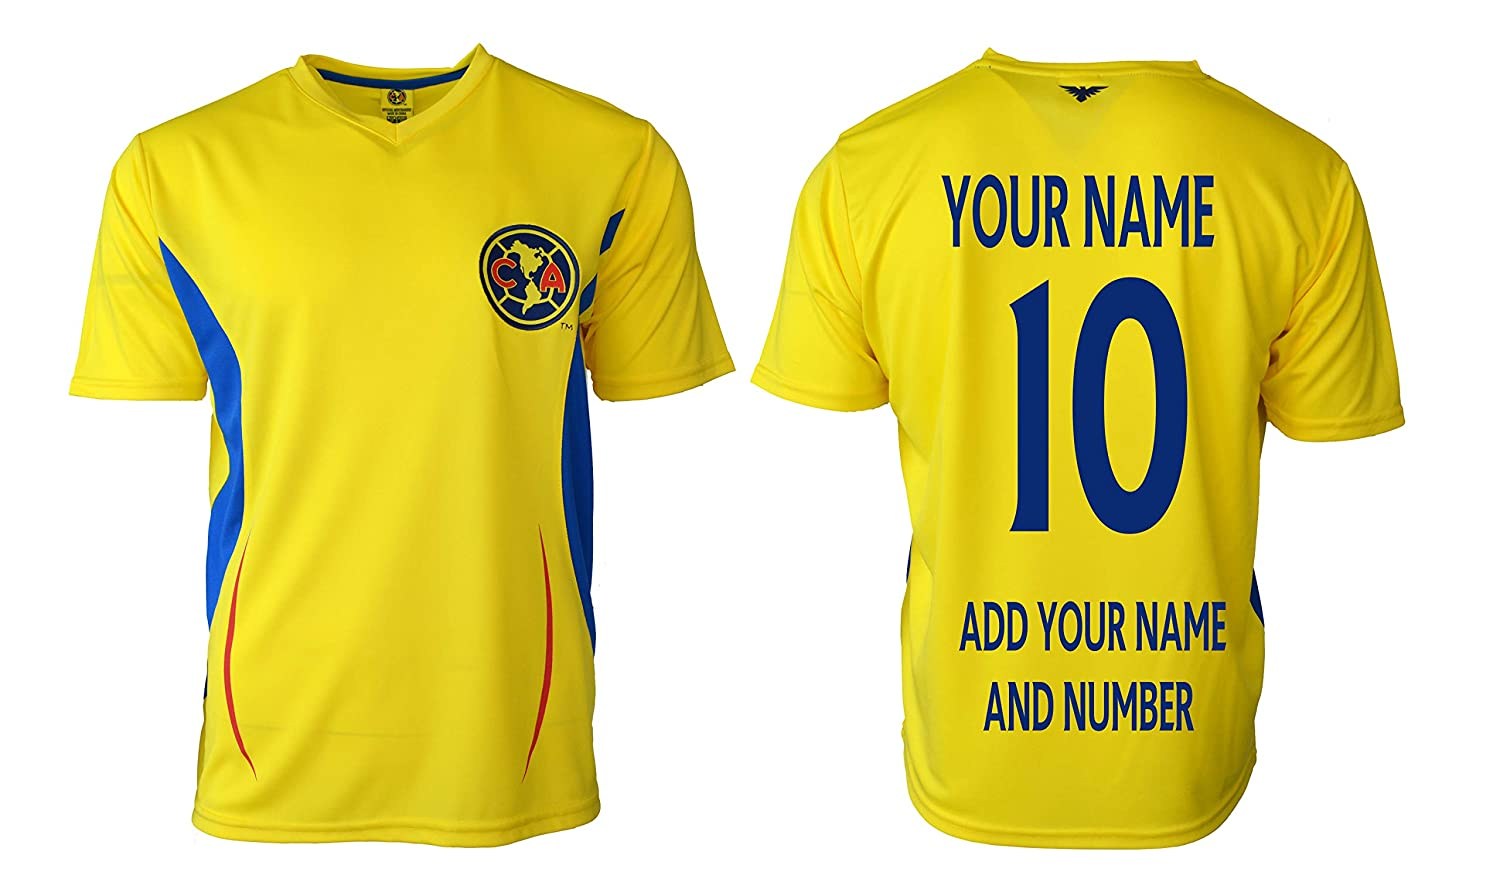 283521630f4 Amazon.com: Club America Adults Soccer Jersey Performance Add Your Name and  Number: Clothing